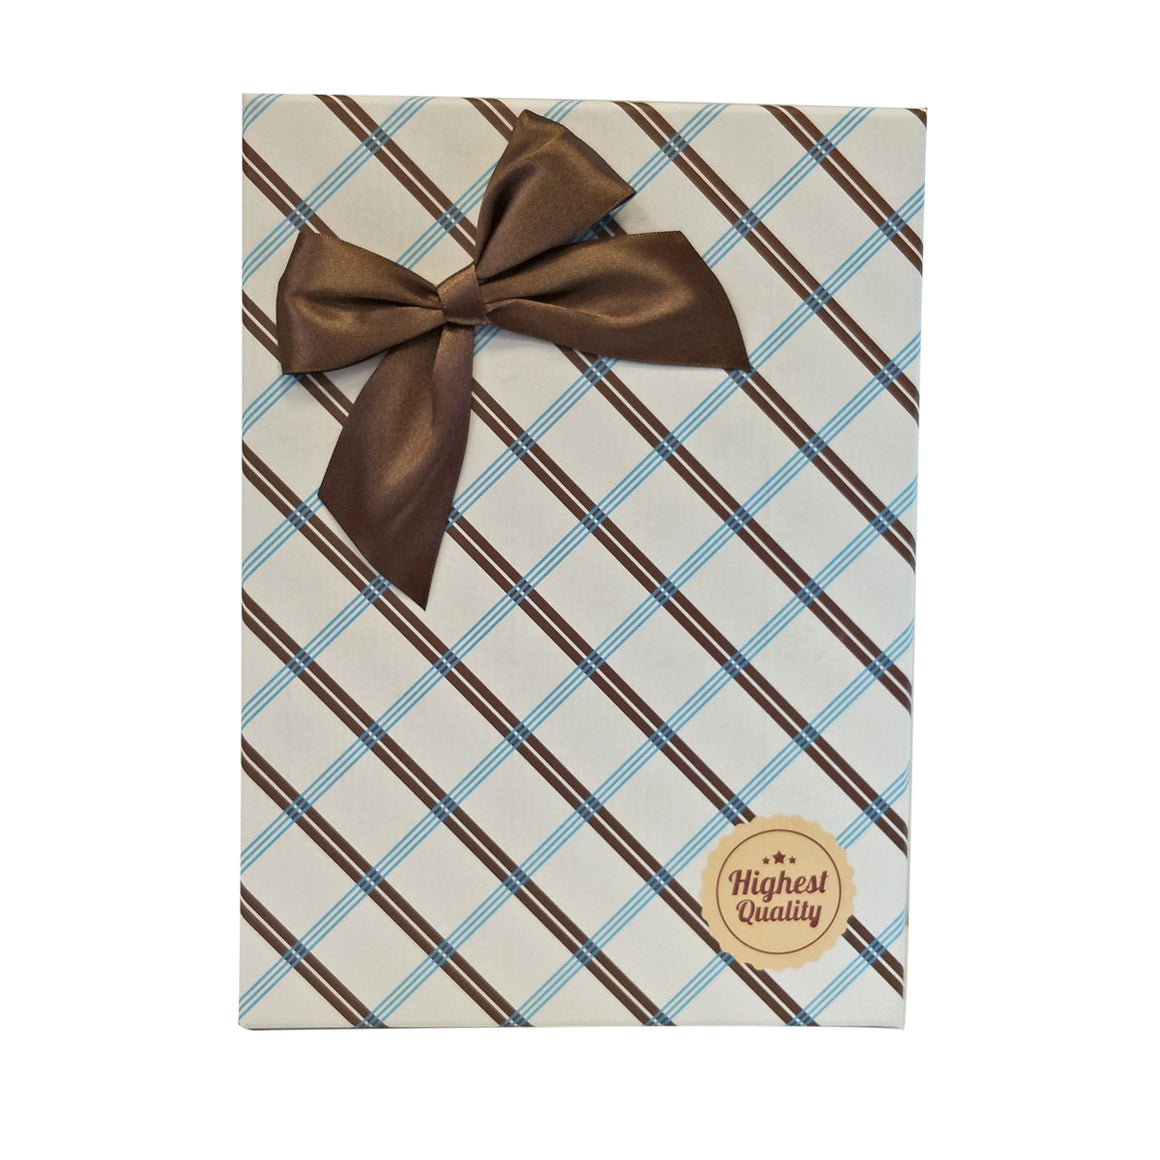 Checkered Pattern Gift Box with Bow - Set of 3